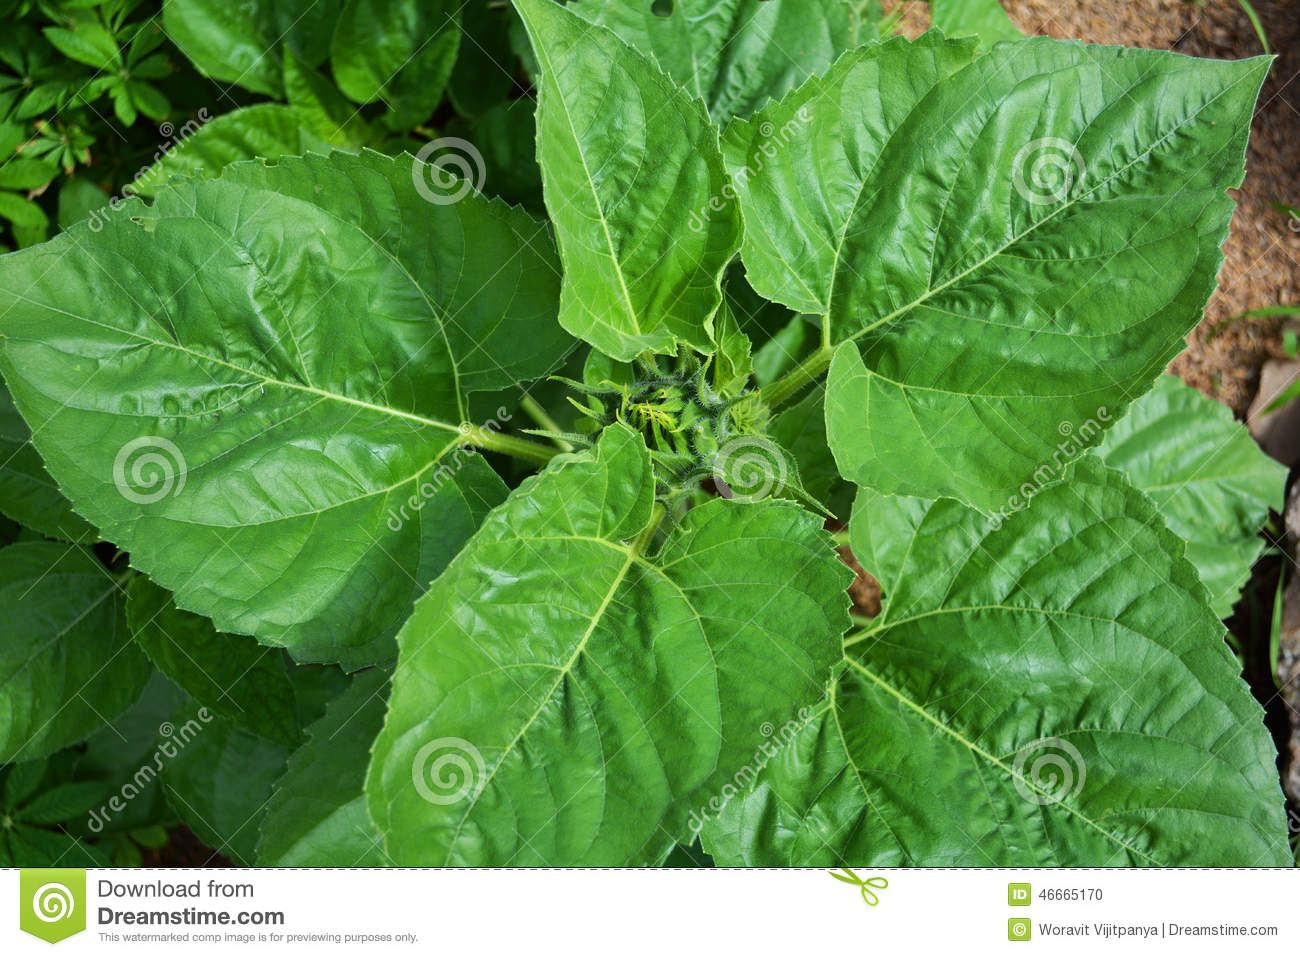 Sunflower Leaves Stock Photo - Image: 46665170